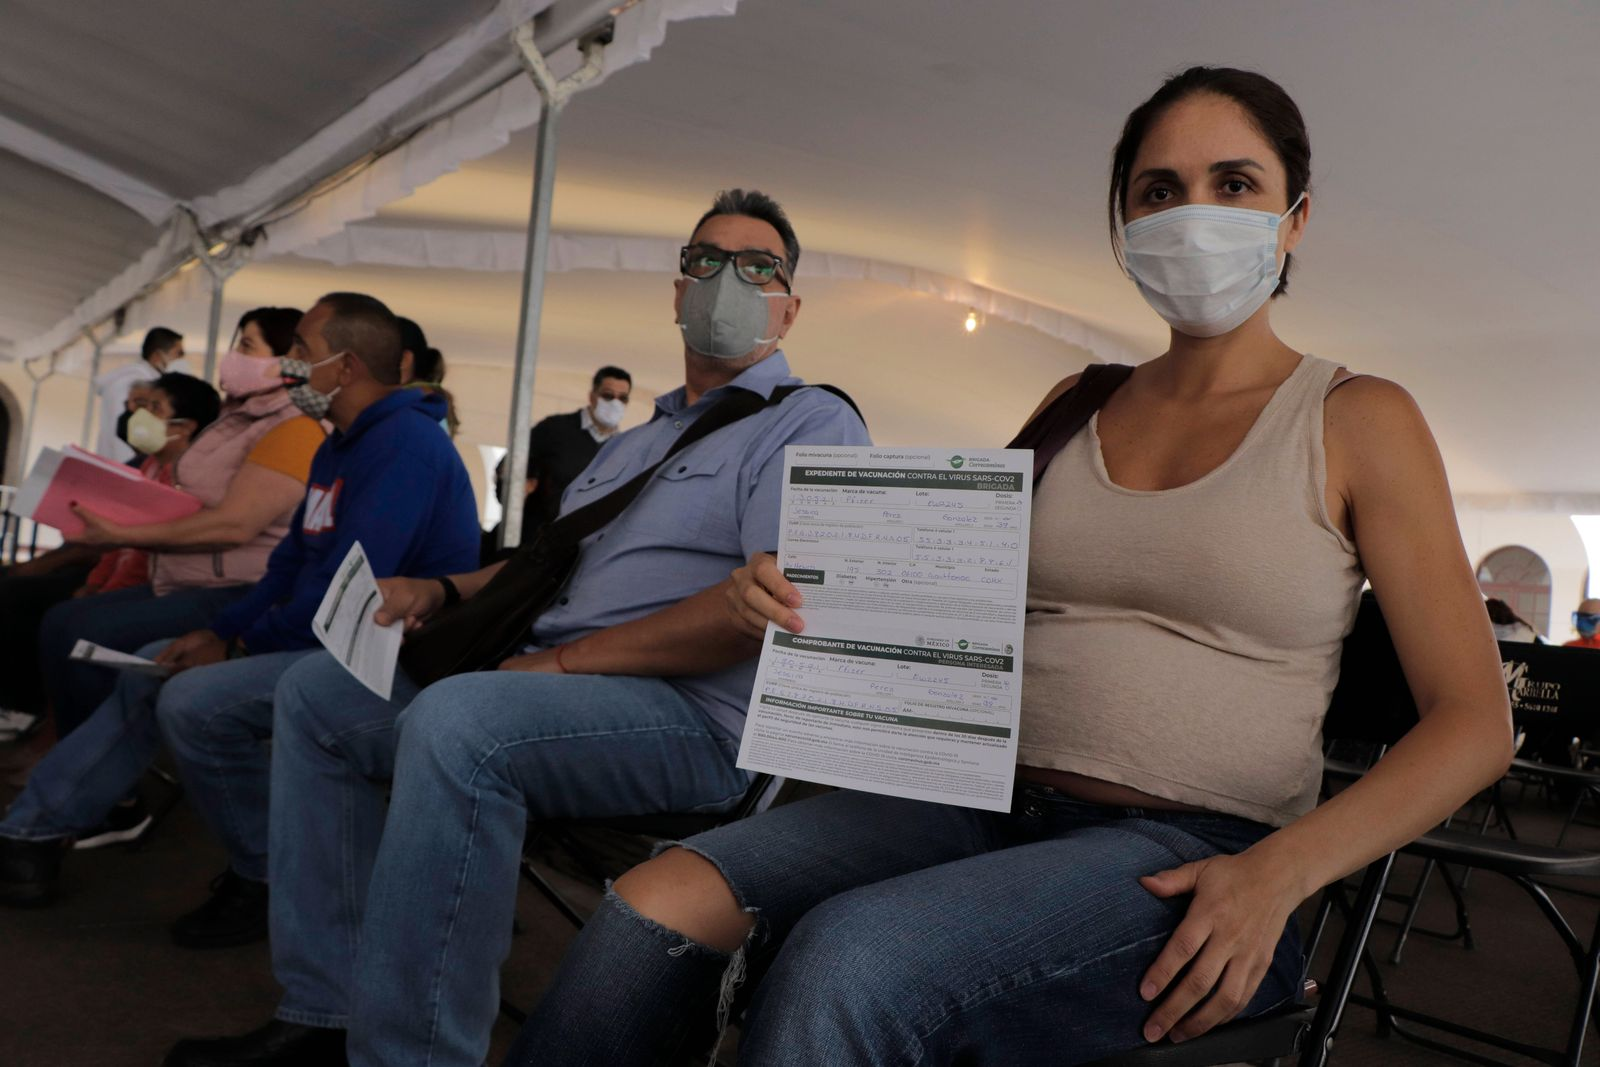 Vaccination Of Pregnant Women Against COVID-19 Begins In Mexico City A pregnant woman inside the facilities of the Beni